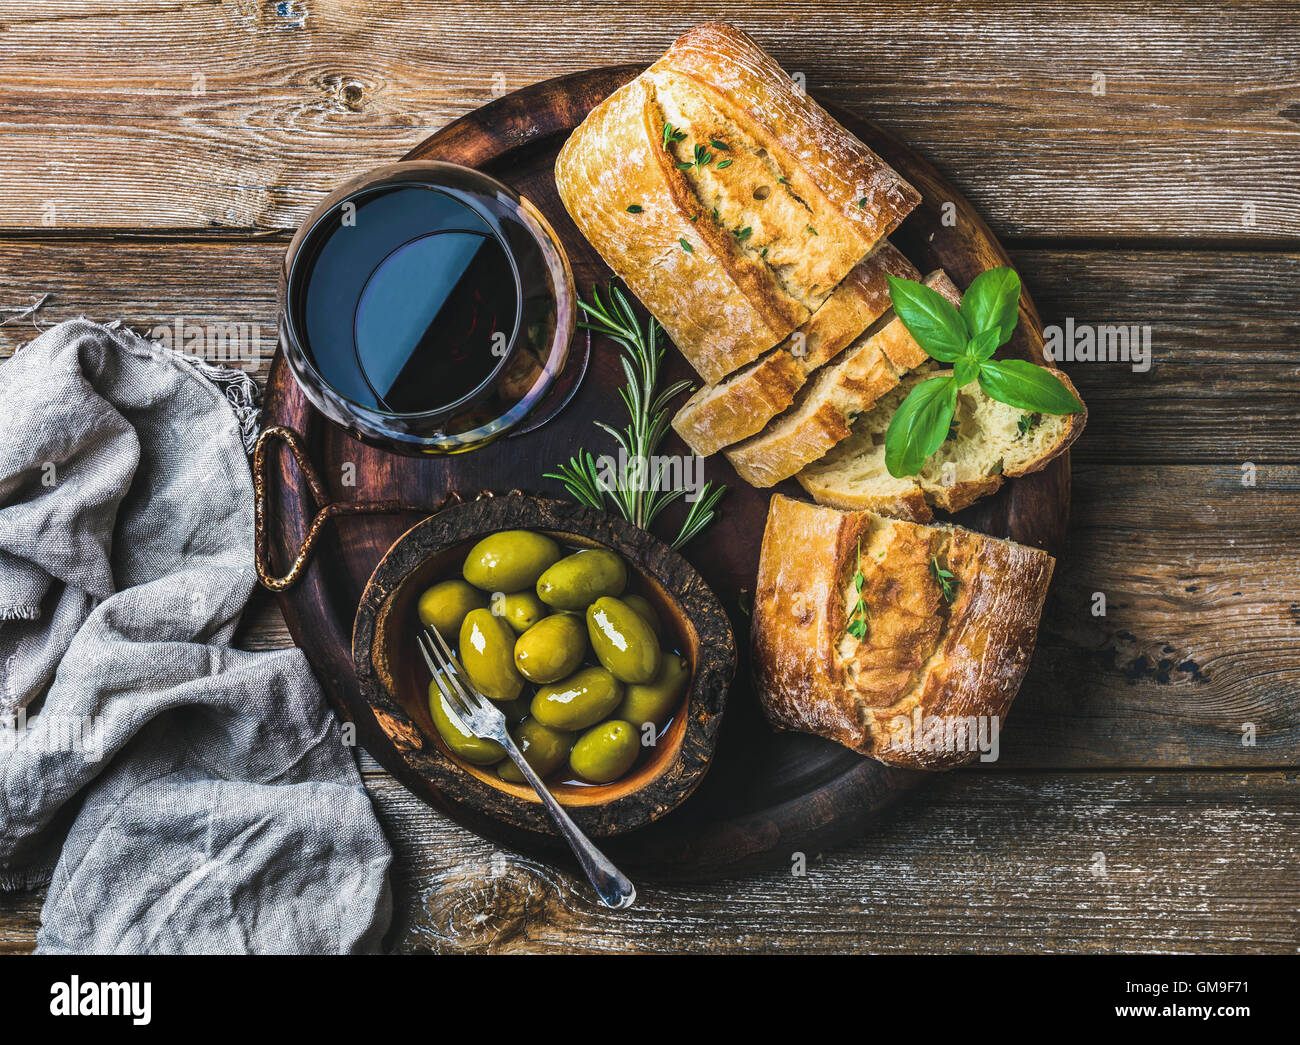 Red wine glass, green olives and ciabatta over wooden background - Stock Image